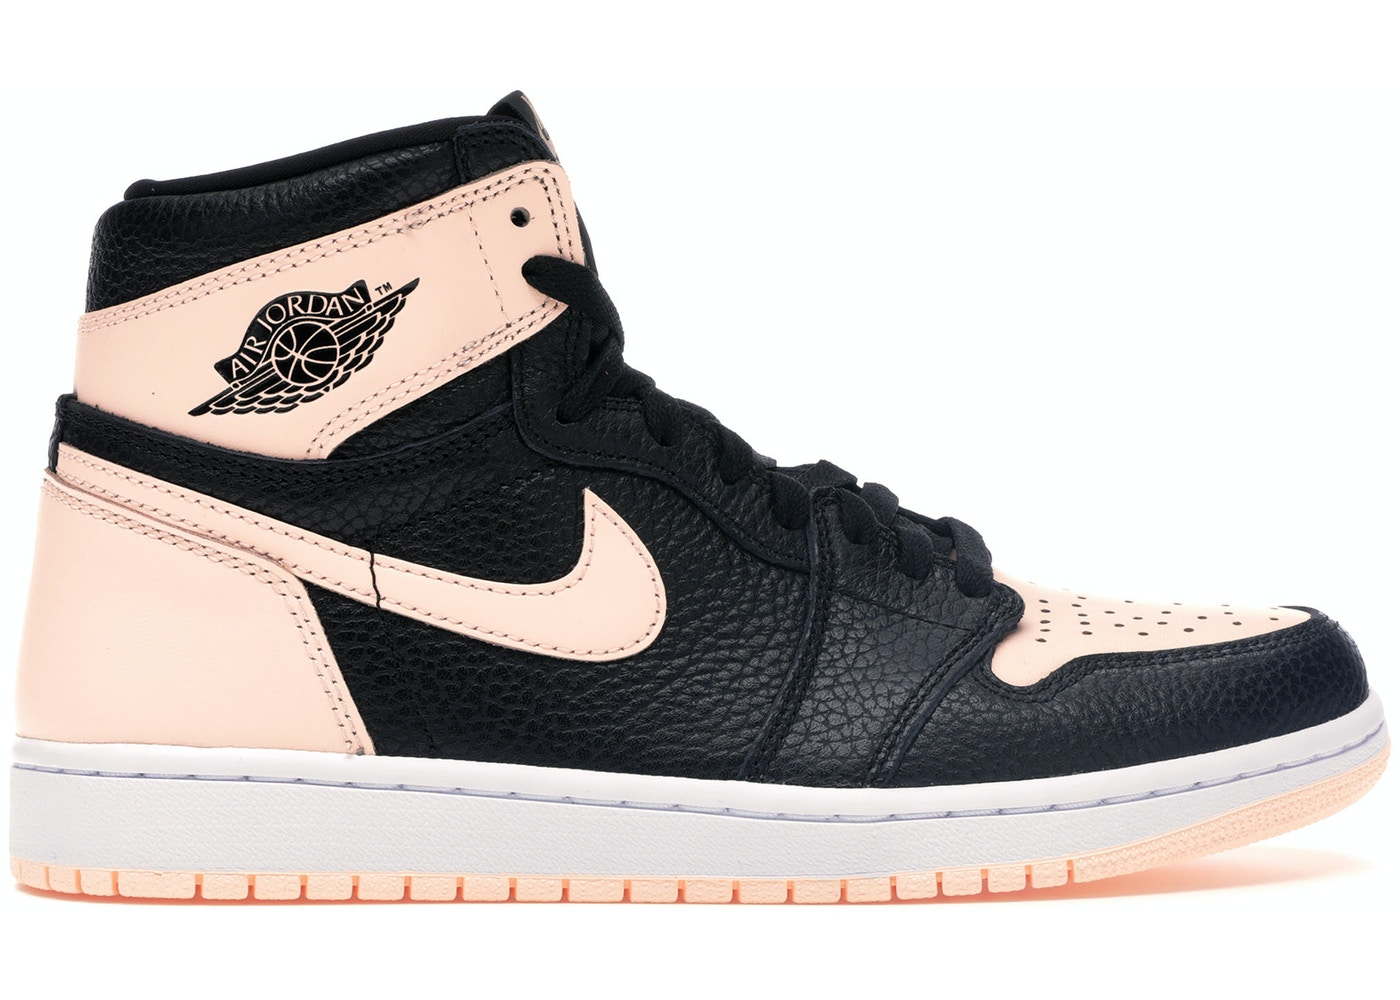 5883c7b0 Jordan 1 Retro High Black Crimson Tint - 555088-081